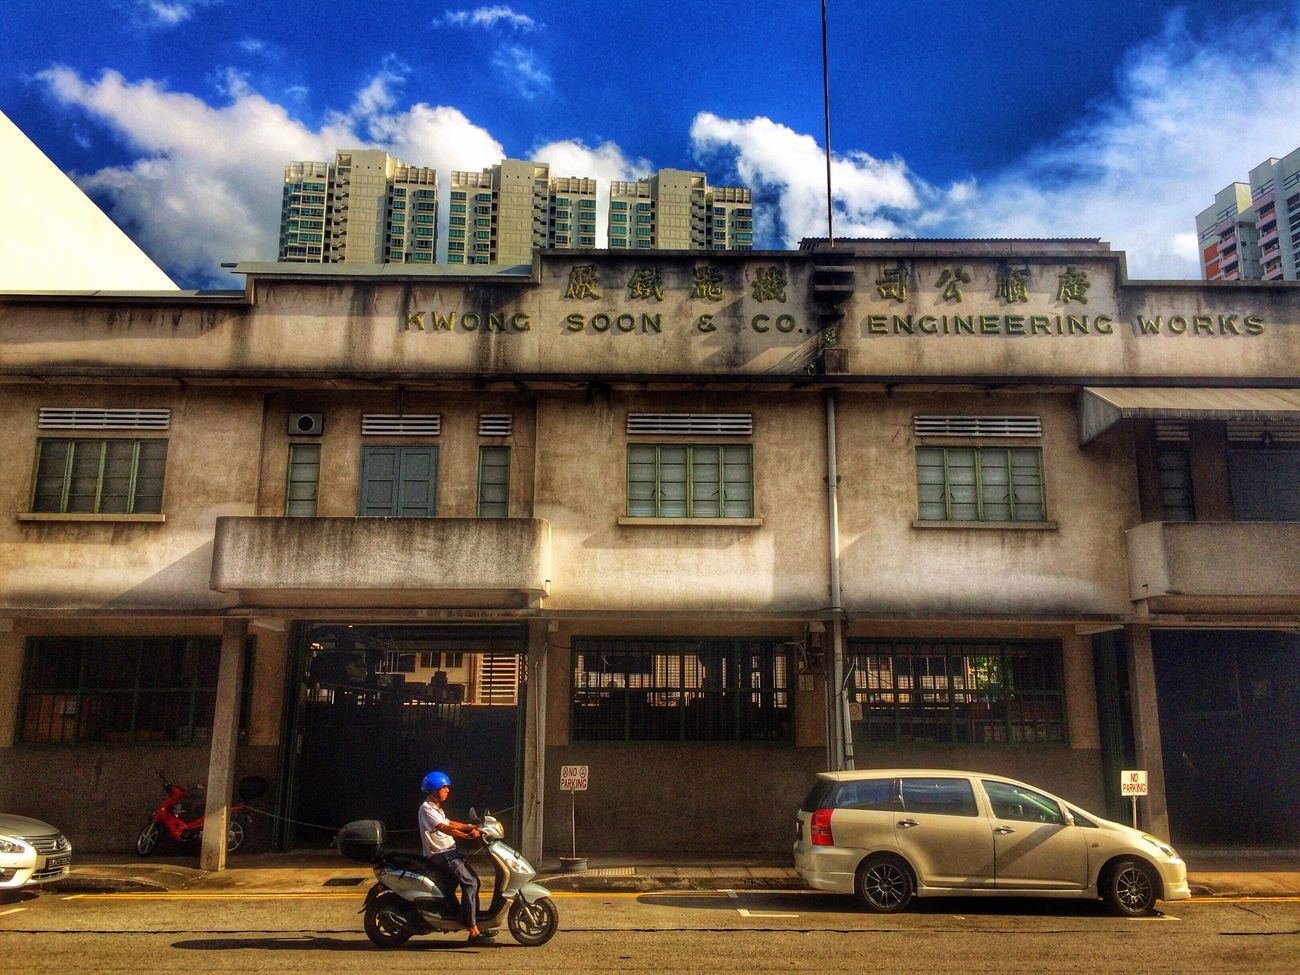 Streetphotography Architecture Everyday Lives Clouds And Sky